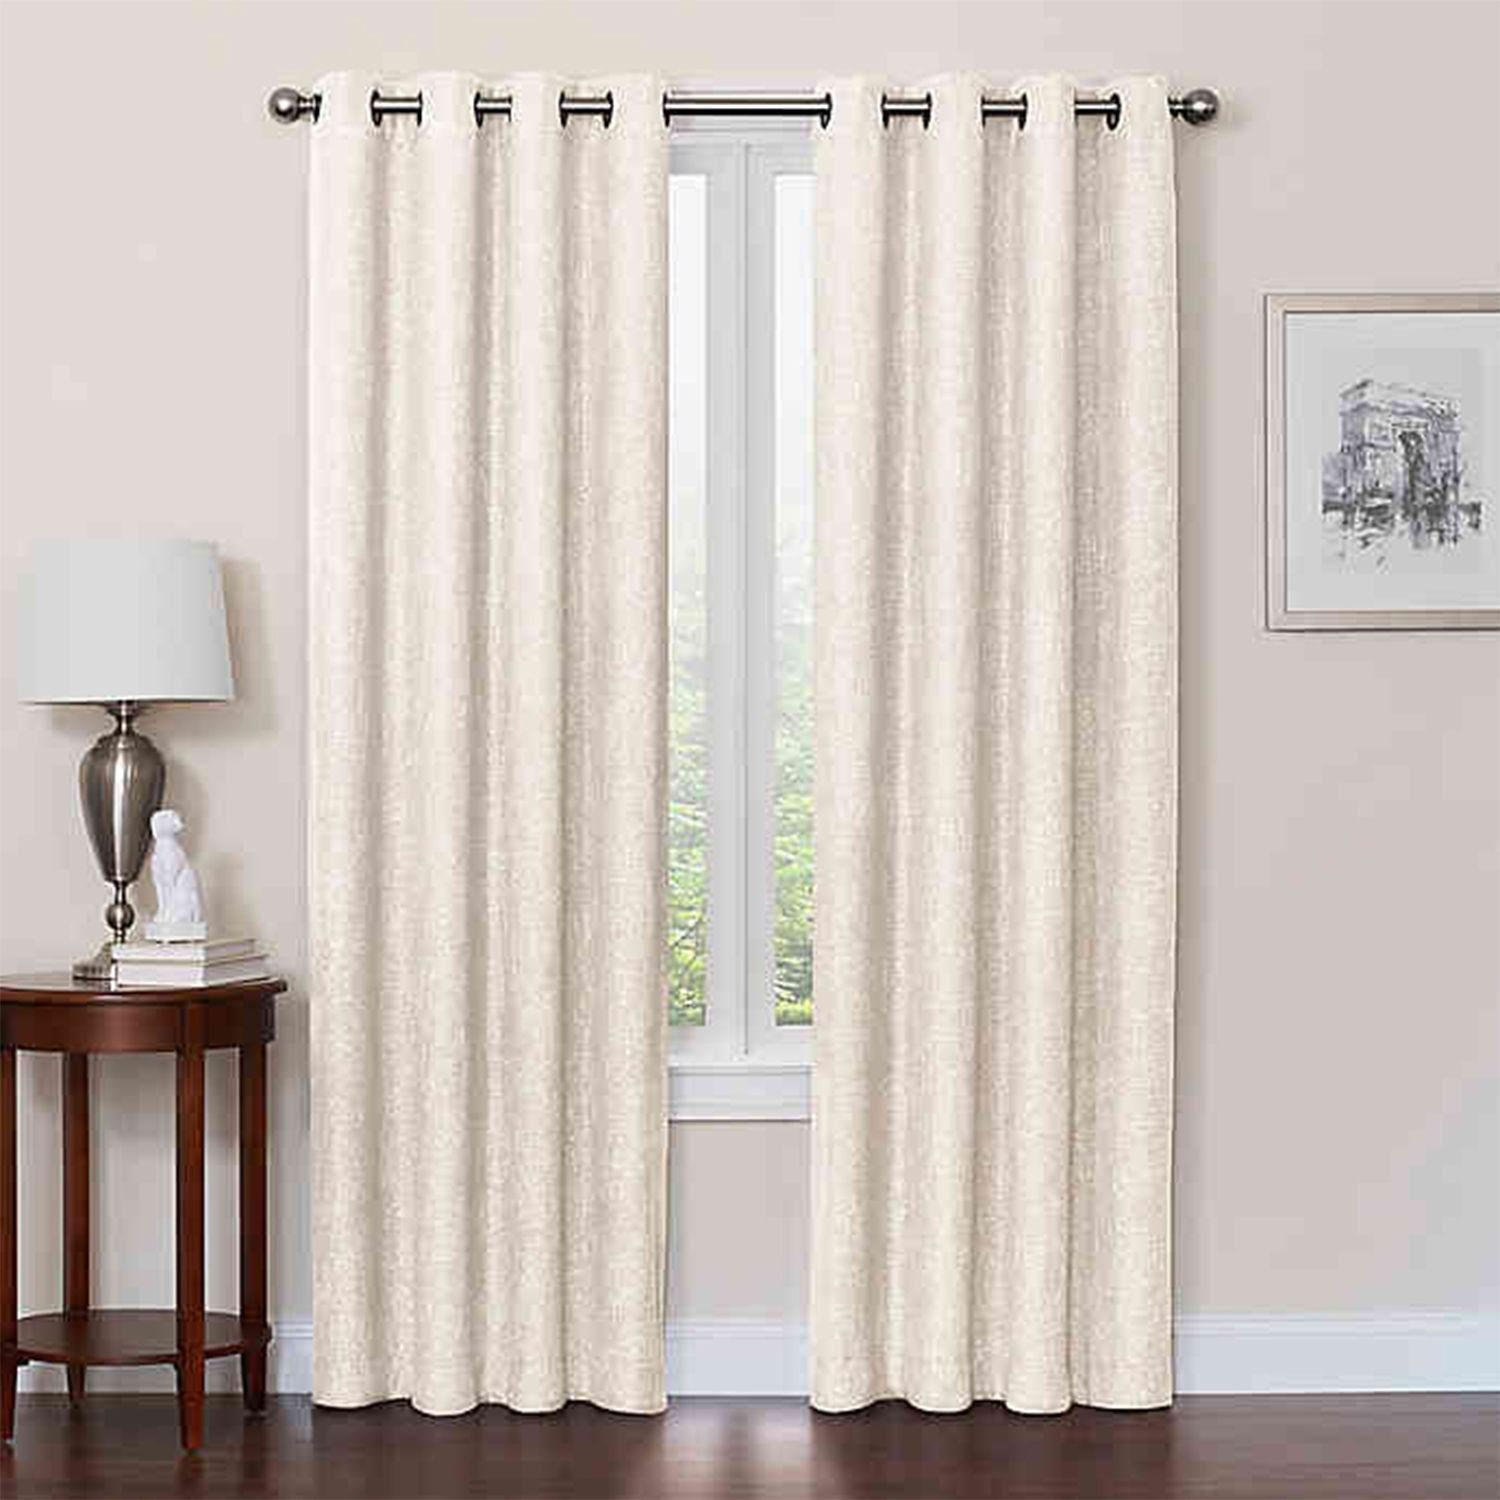 The 7 Best Blackout Curtains To Help You Sleep Better Day Or Night In 2020 Panel Curtains Custom Drapes Drapes Curtains